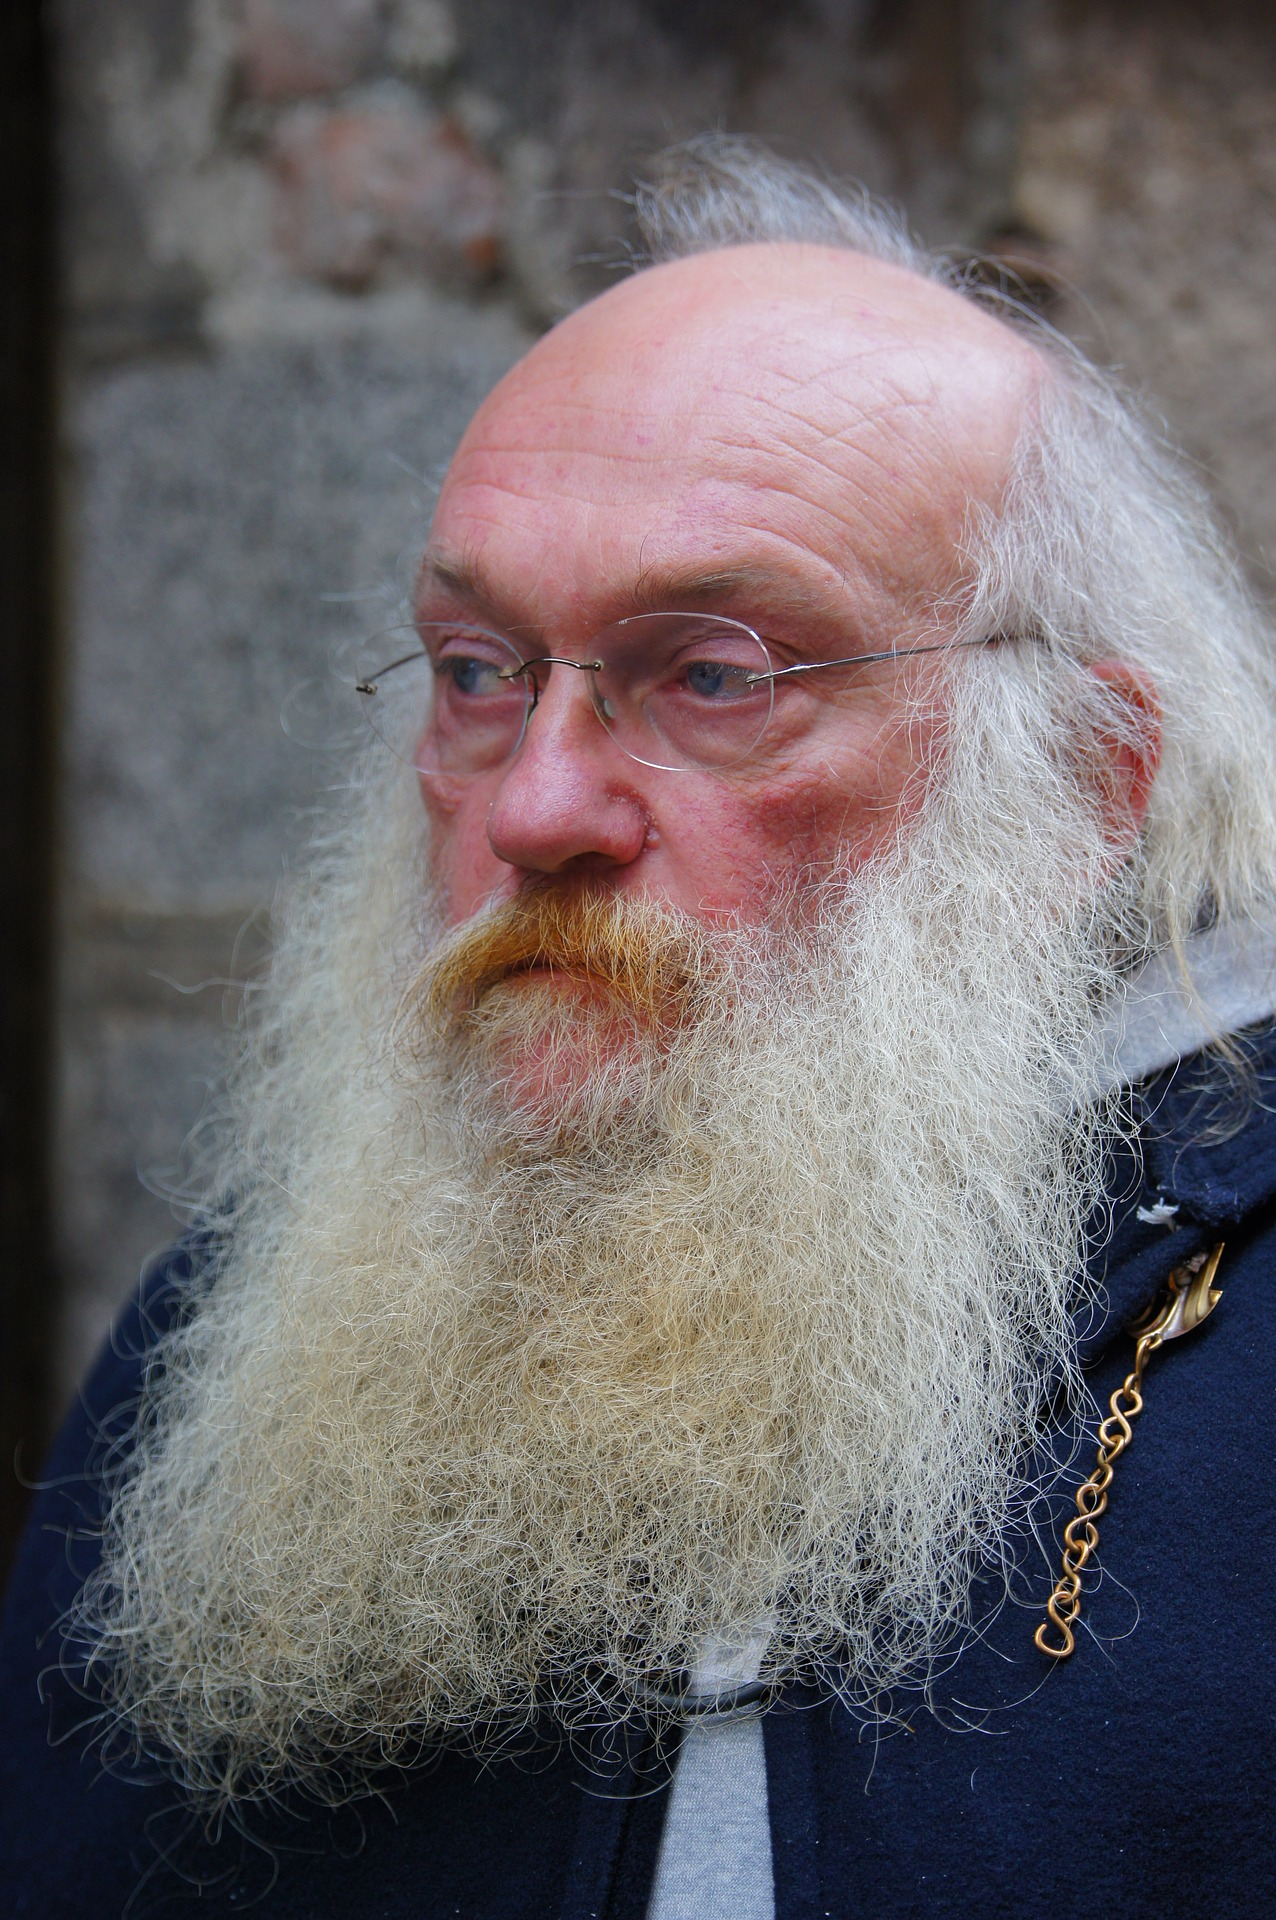 The Rabbis beard was nearly as long as his knowledge!